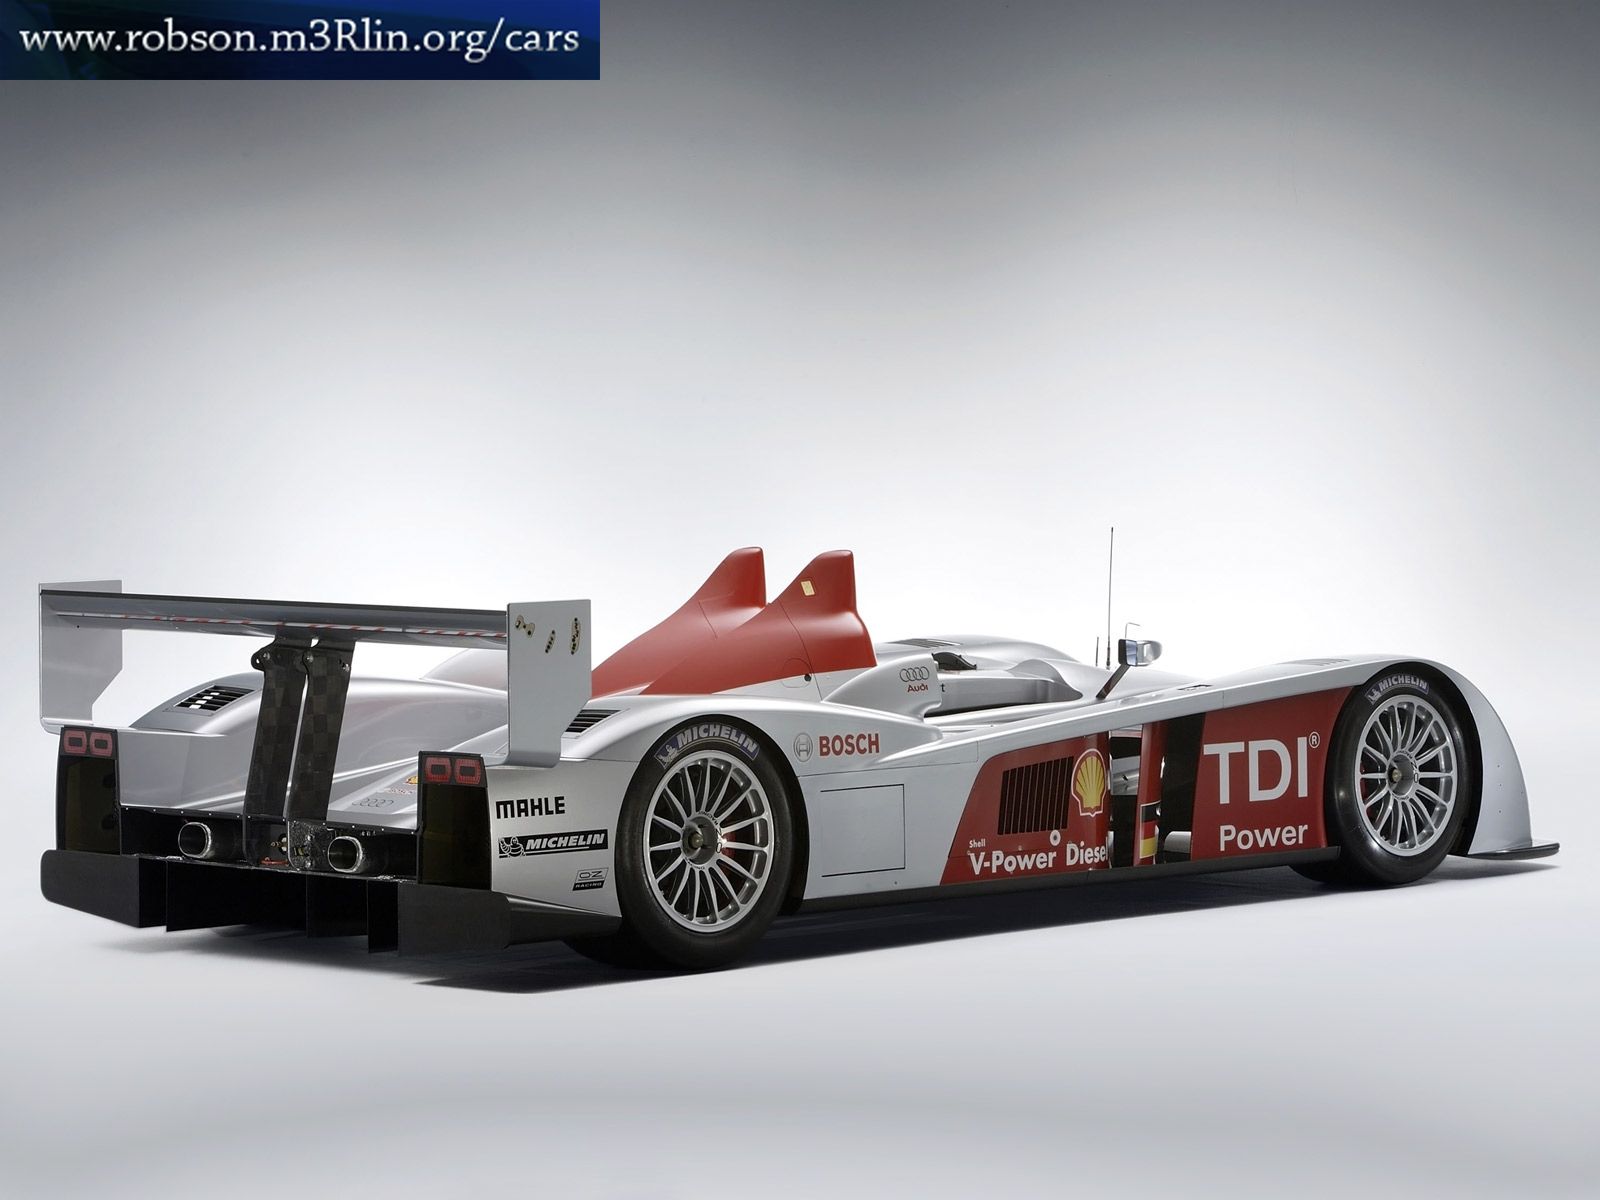 Audi R10 TDI | Cars - Pictures & Wallpapers, Automotive News, High ...